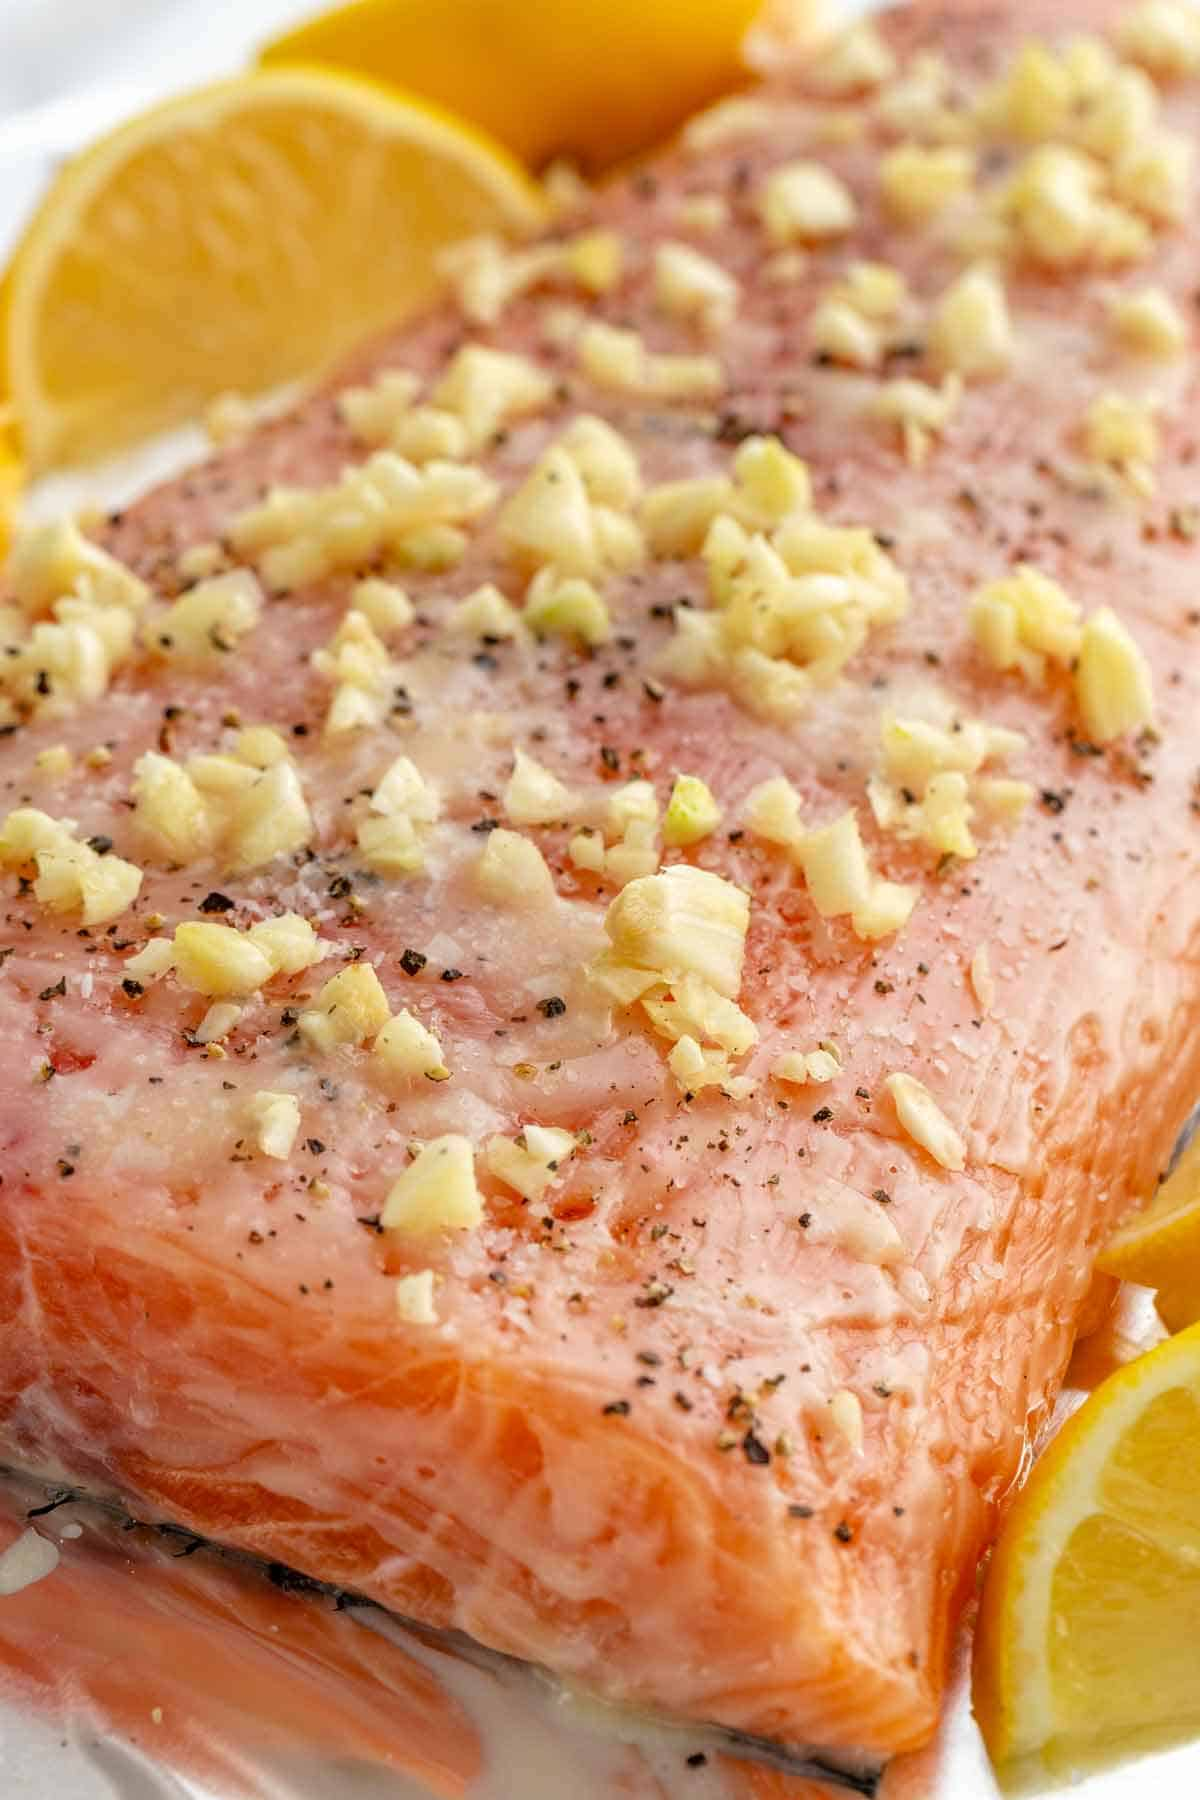 close up photo of crushed garlic pieces on top of a salmon fillet